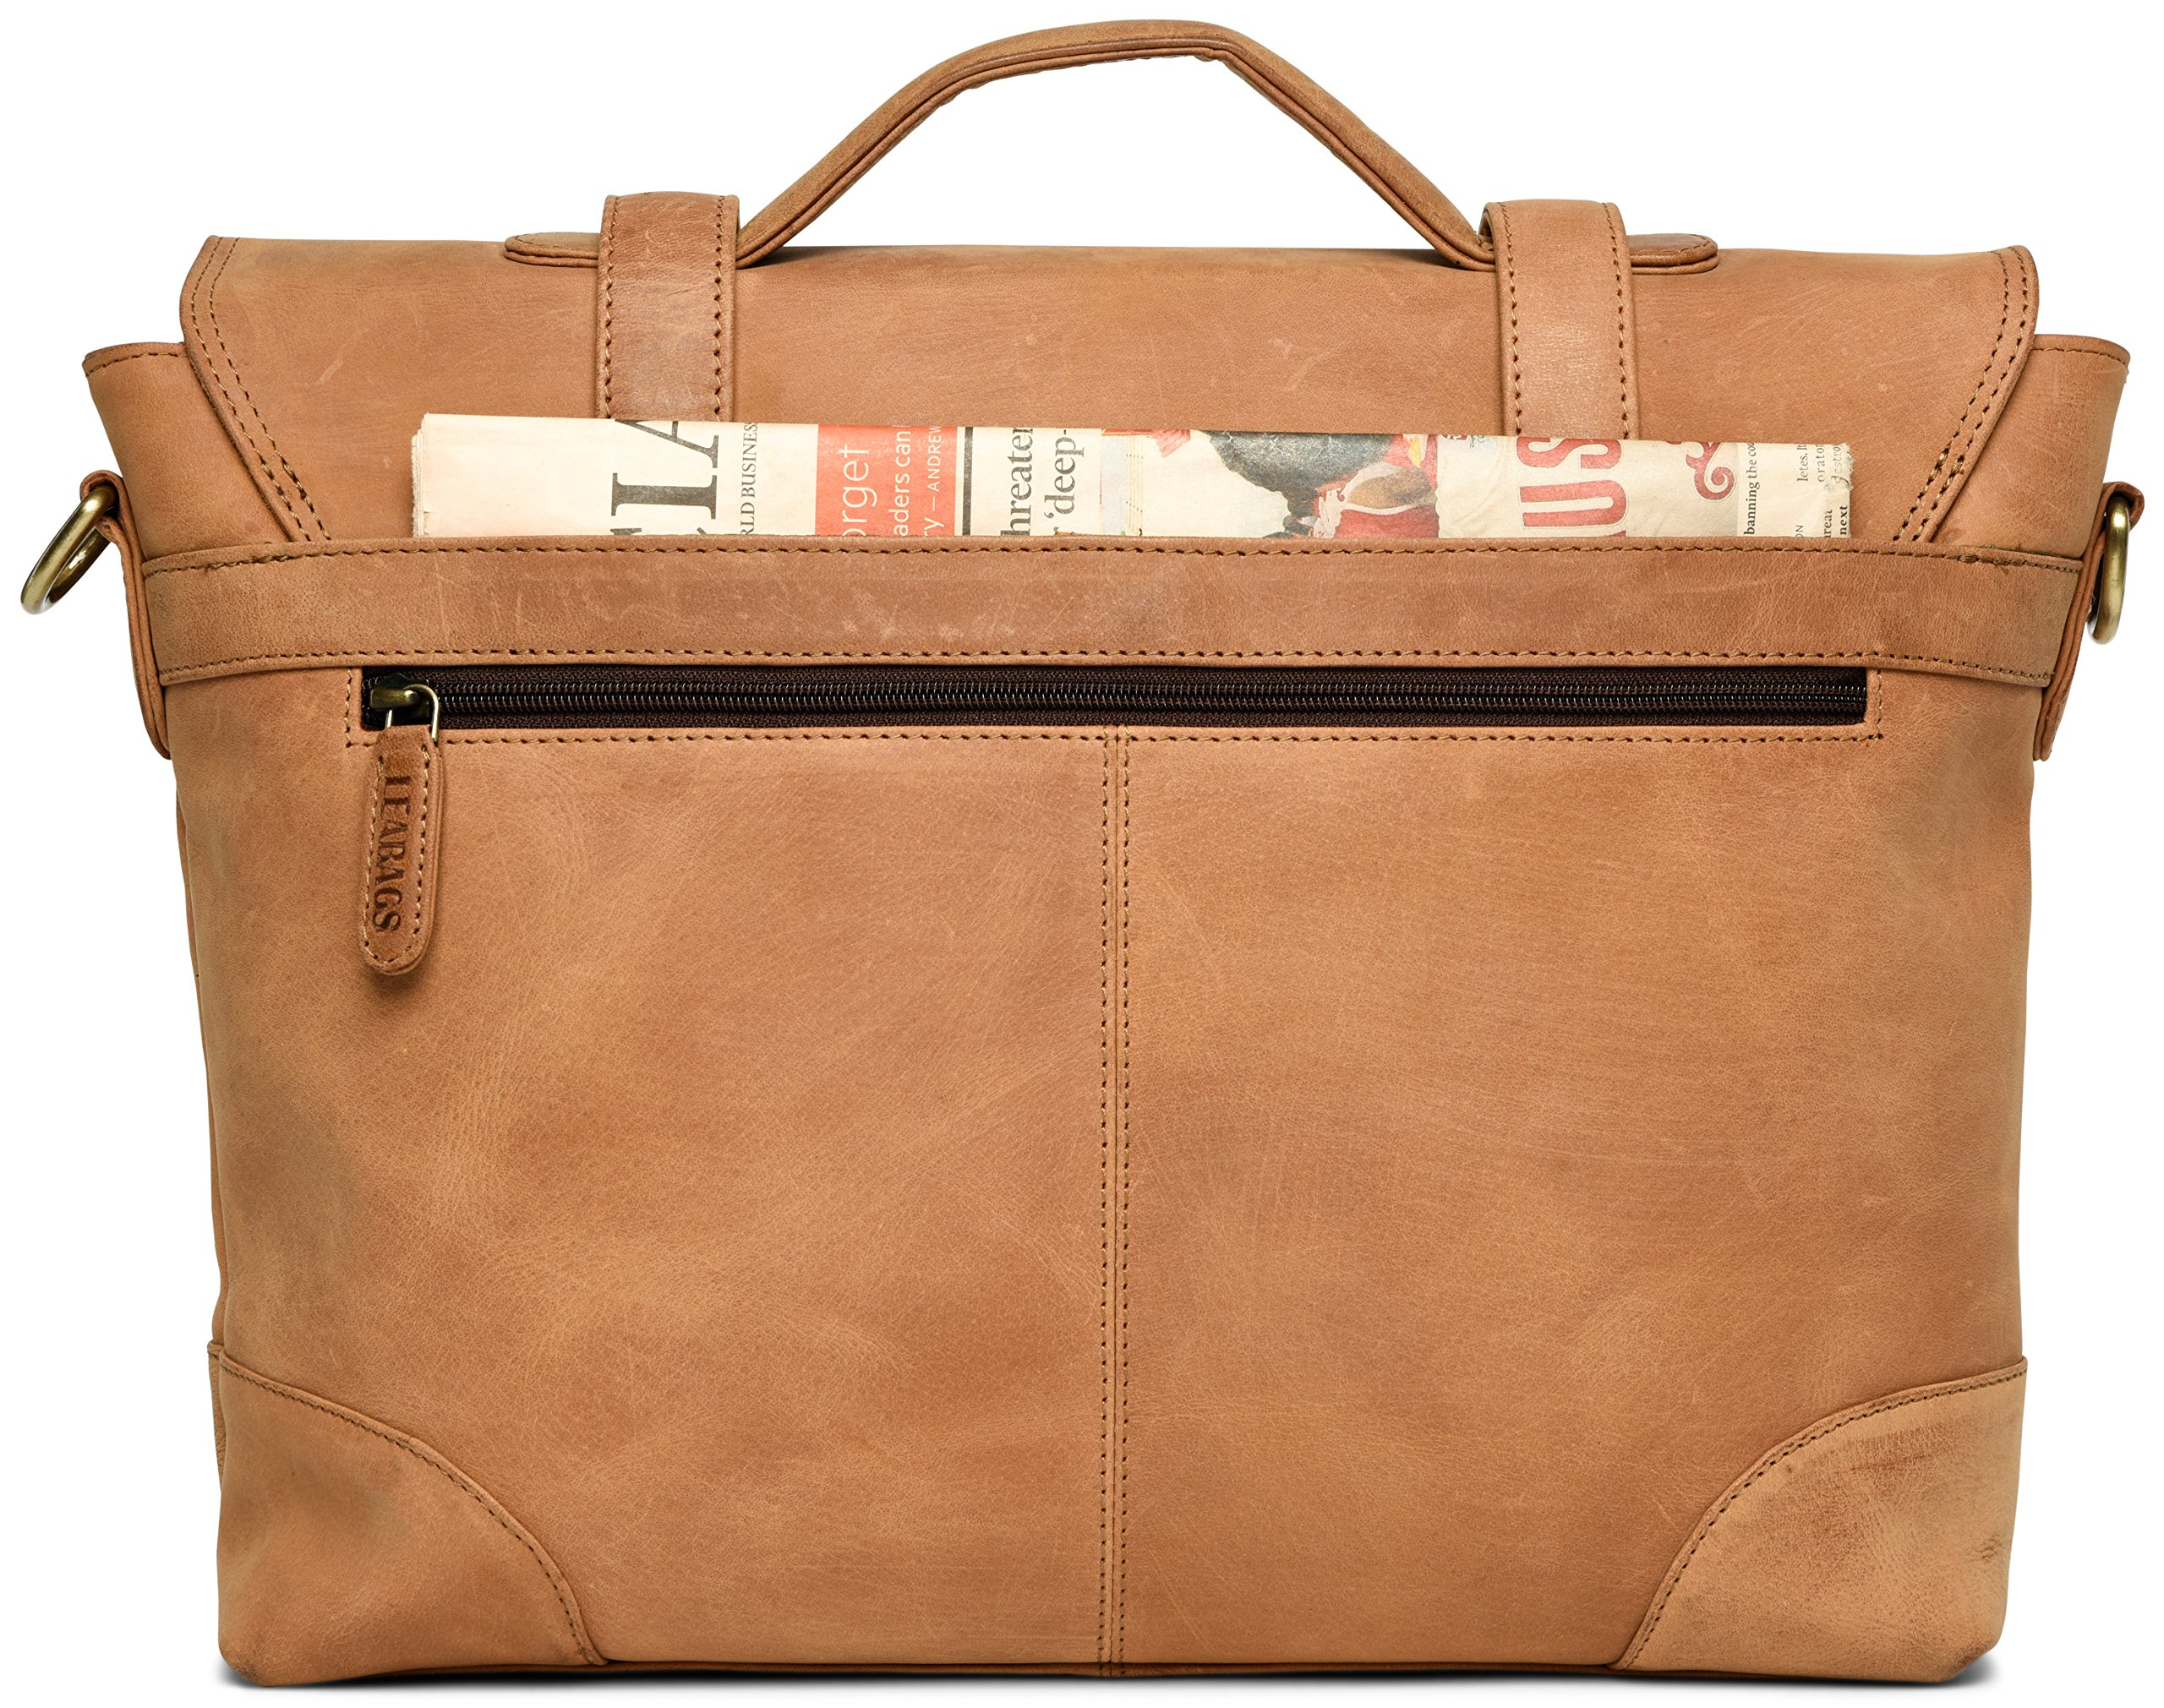 LEABAGS Liverpool genuine buffalo leather briefcase in vintage style - Brown by LEABAGS (Image #9)